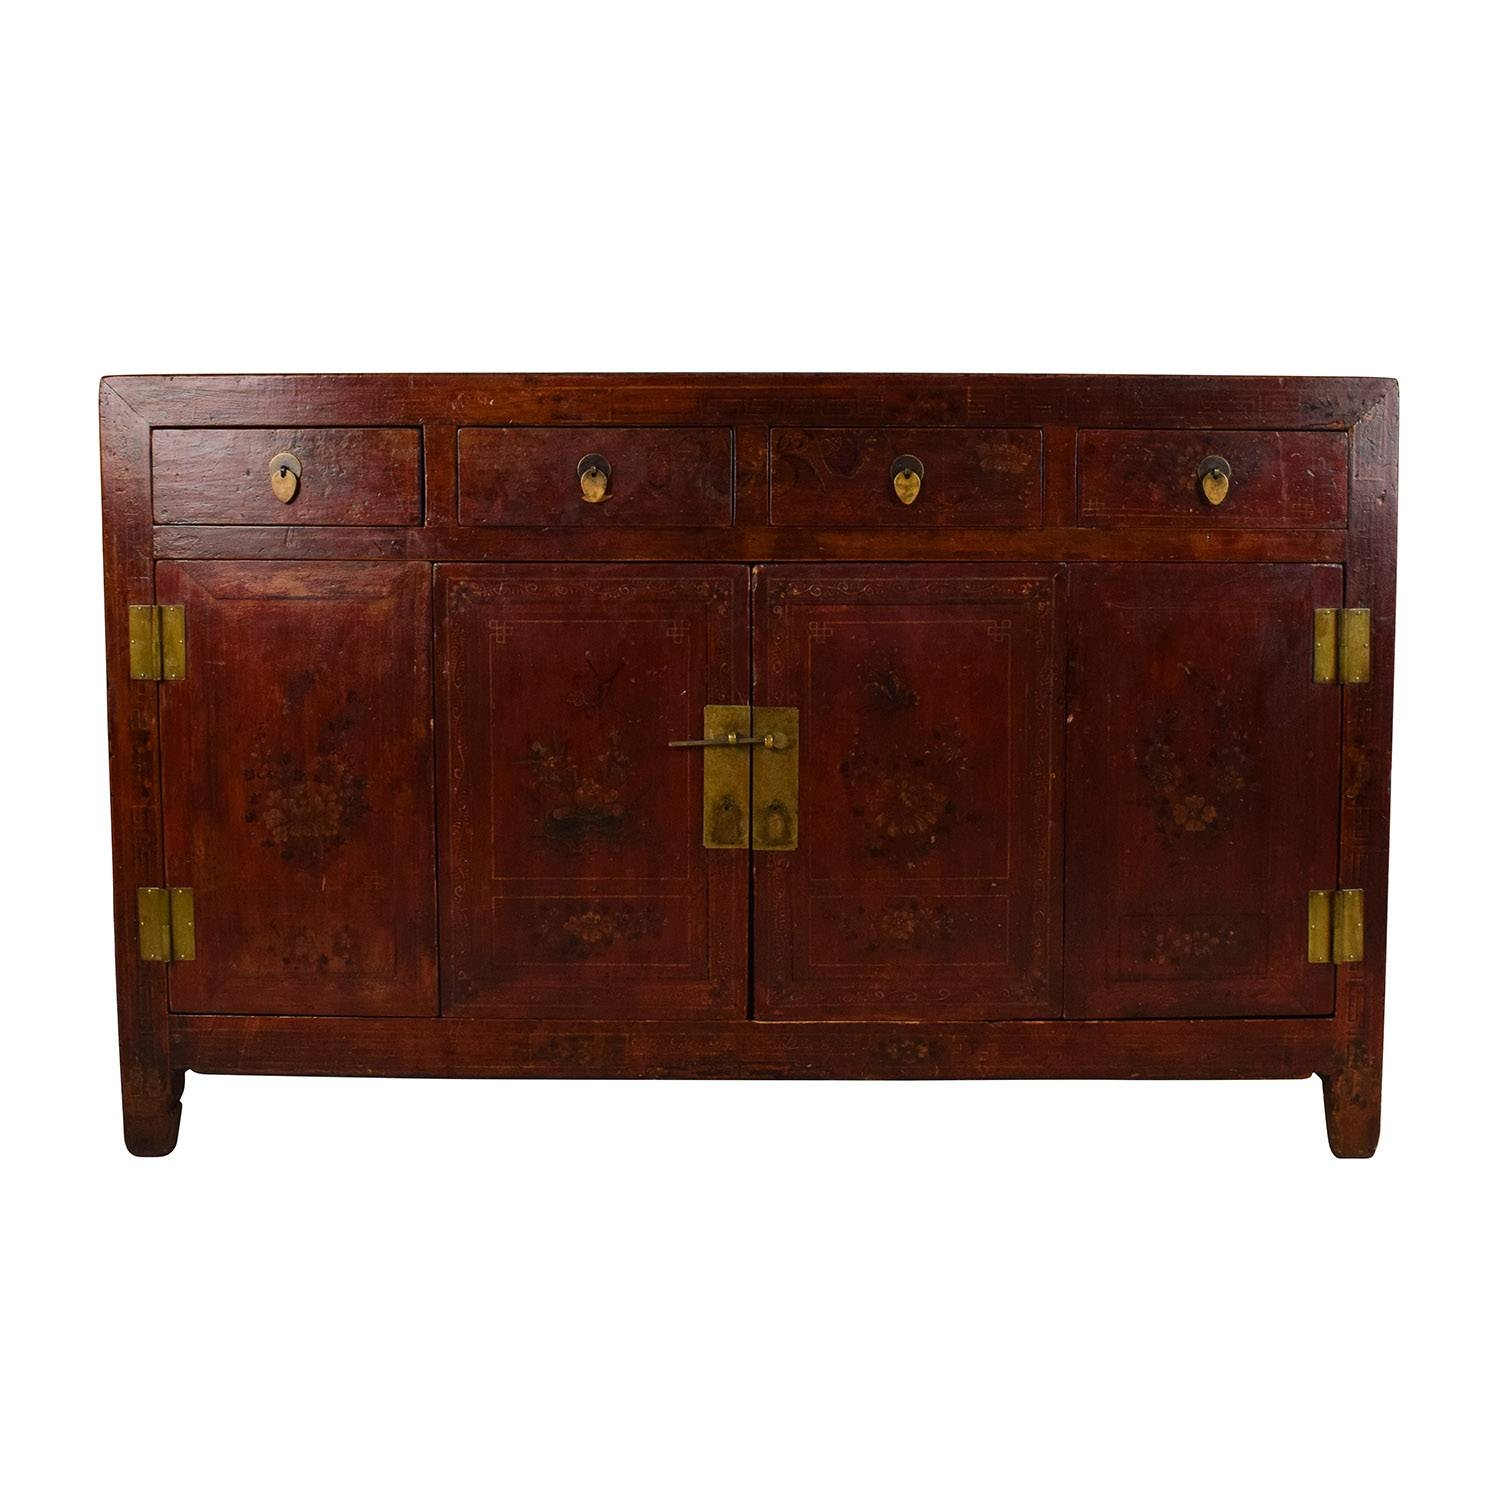 66% Off - Solid Wood Southeast Asian Credenza / Storage intended for Asian Sideboards (Image 7 of 30)